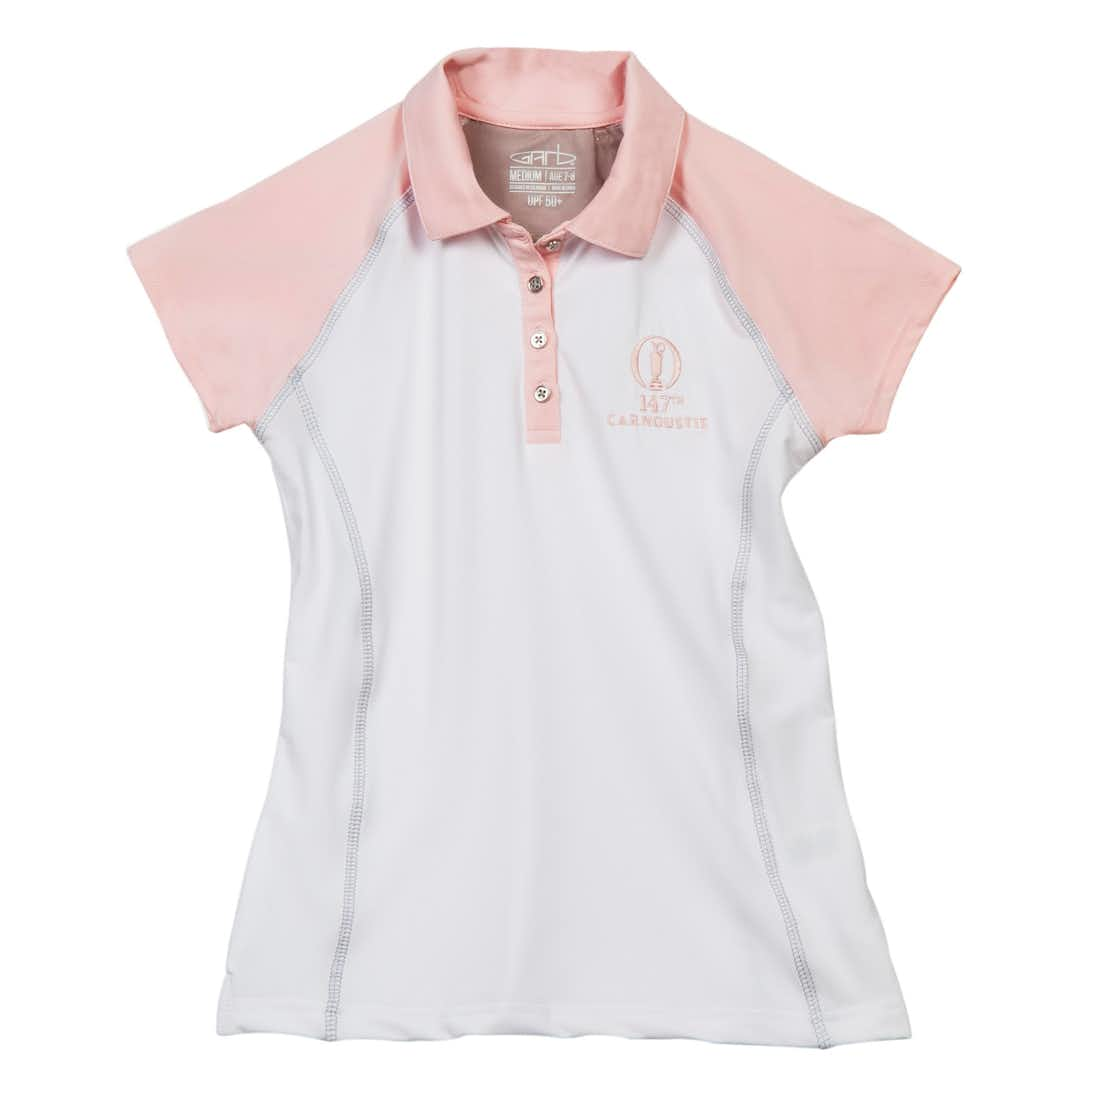 147th Carnoustie Children's Plain Polo - White